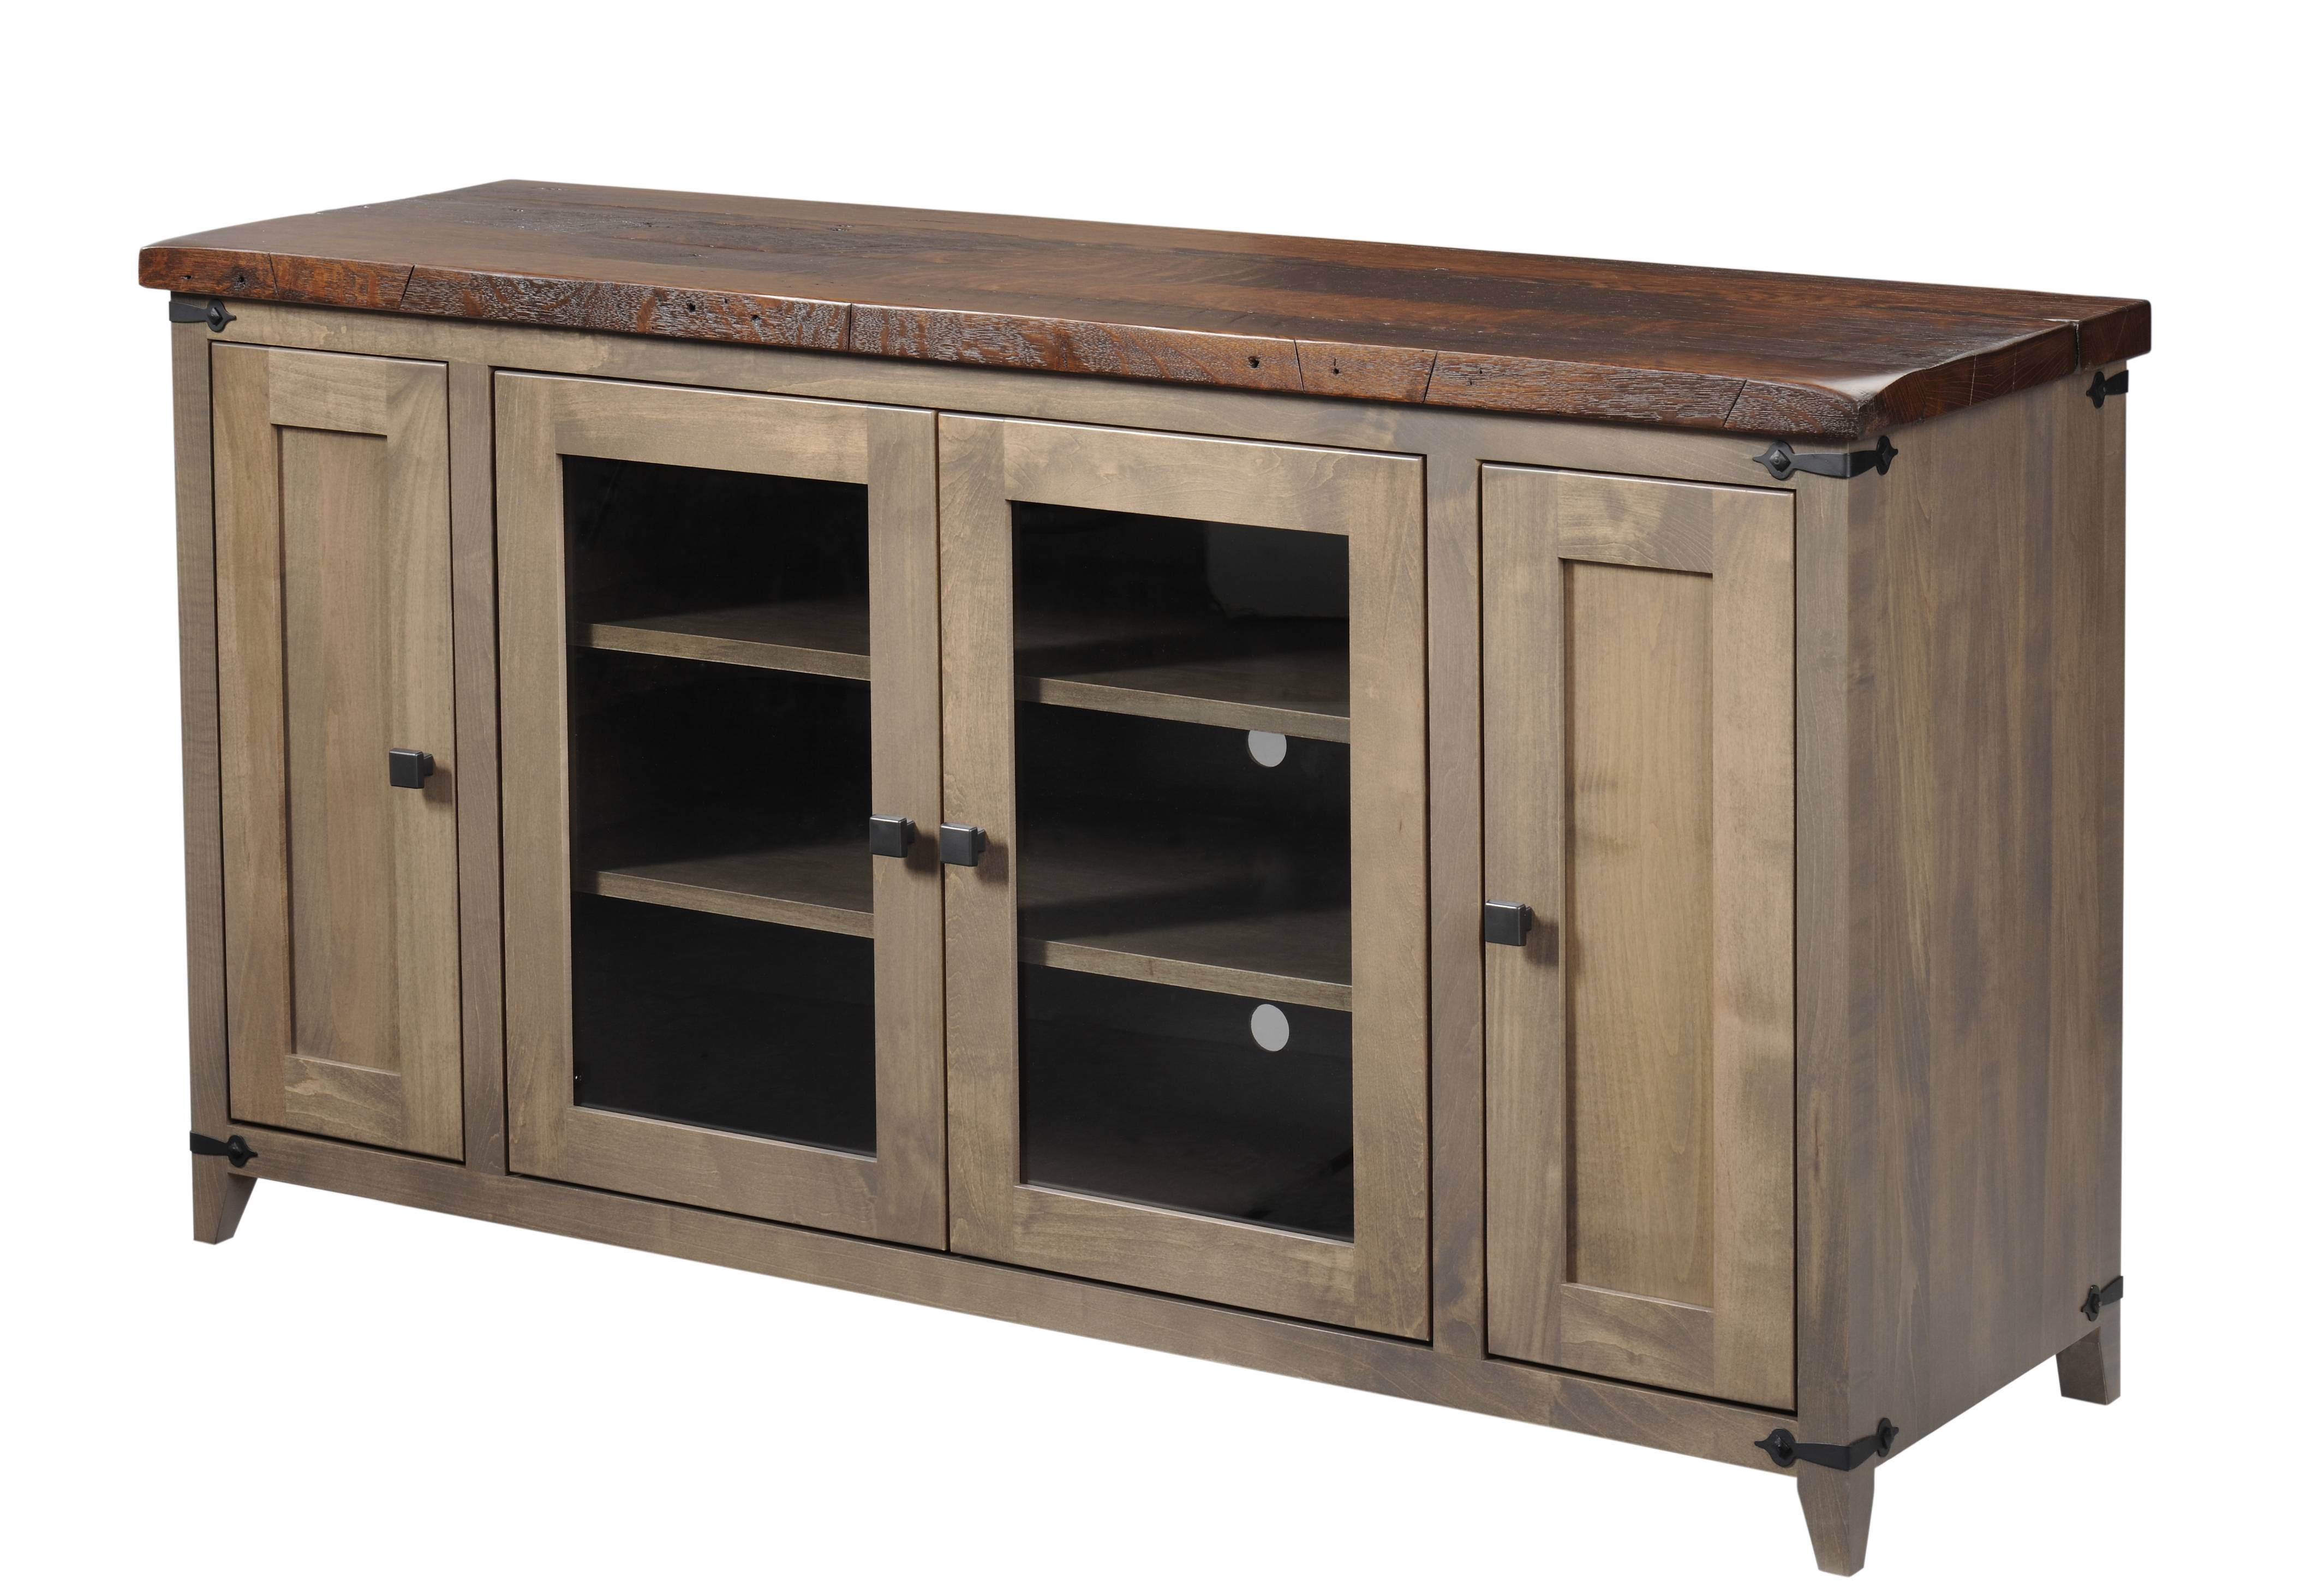 Entertainment Tv Stands, Stereo Cabinets - Portland - Oak intended for Maple Tv Cabinets (Image 6 of 15)